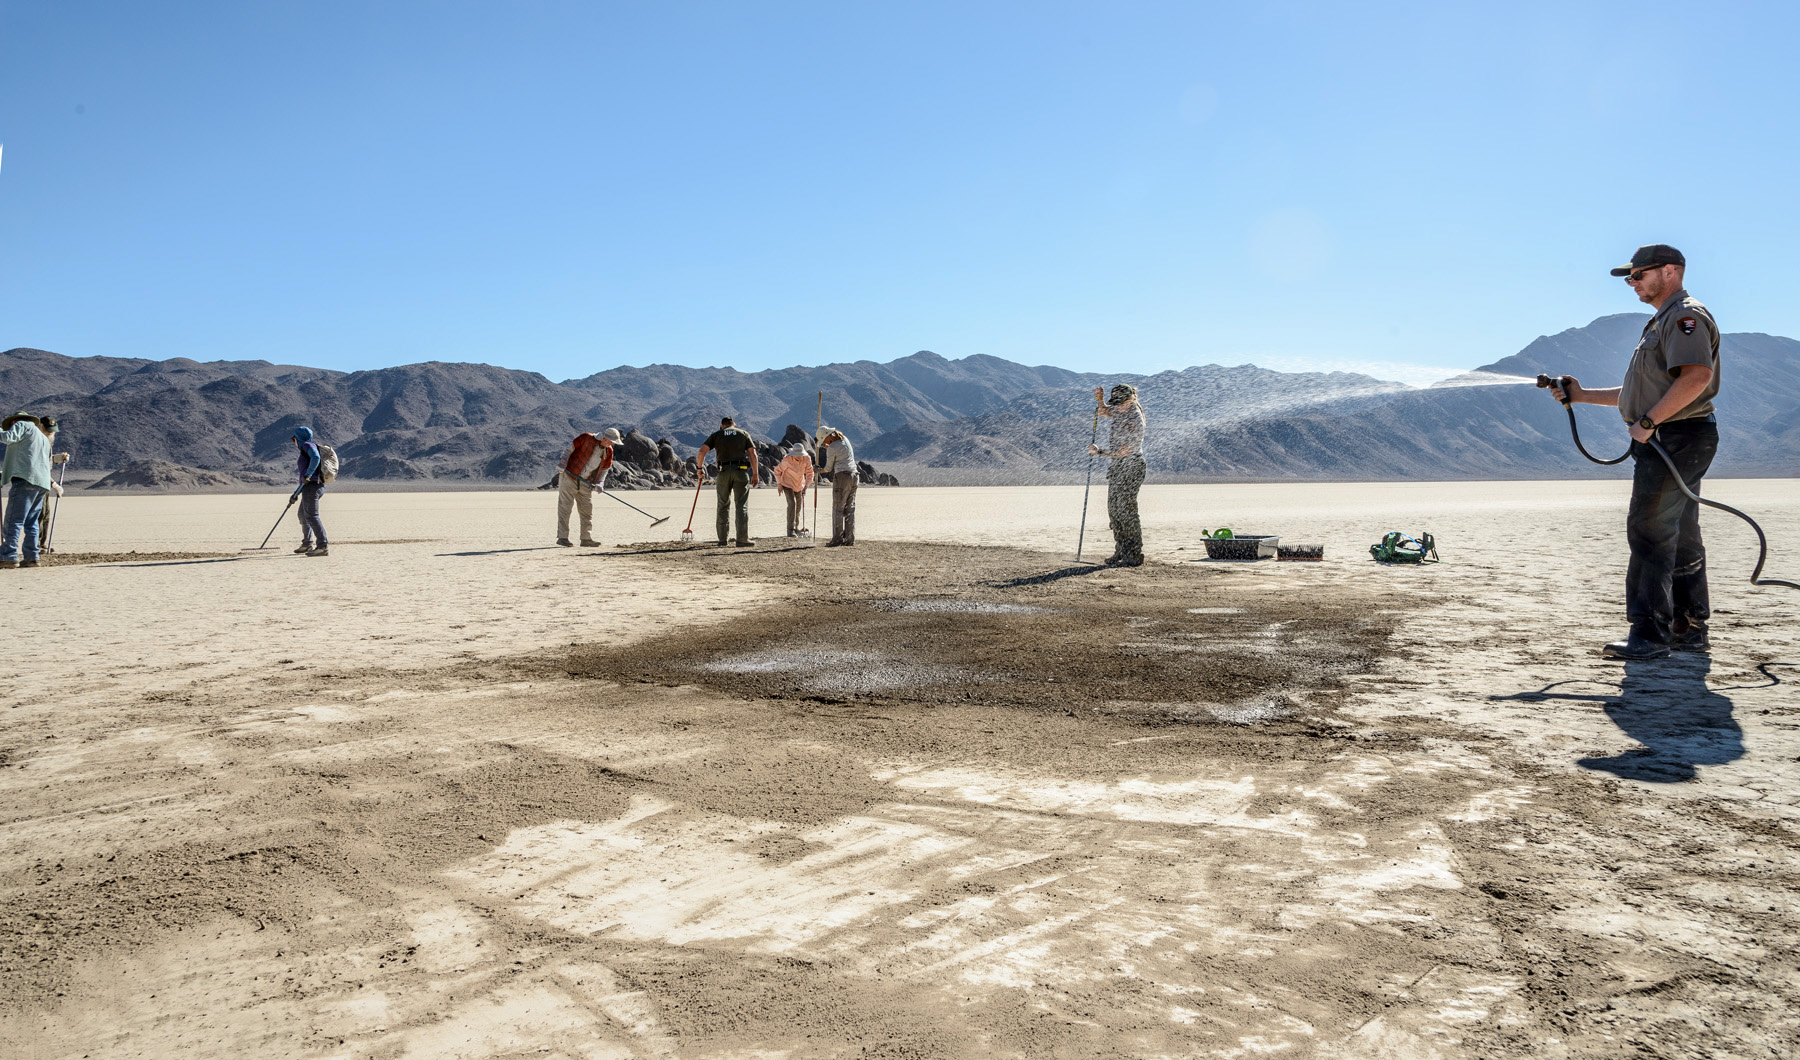 A group of people are raking and watering a large flat playa, where road tracks had been left in the dirt.